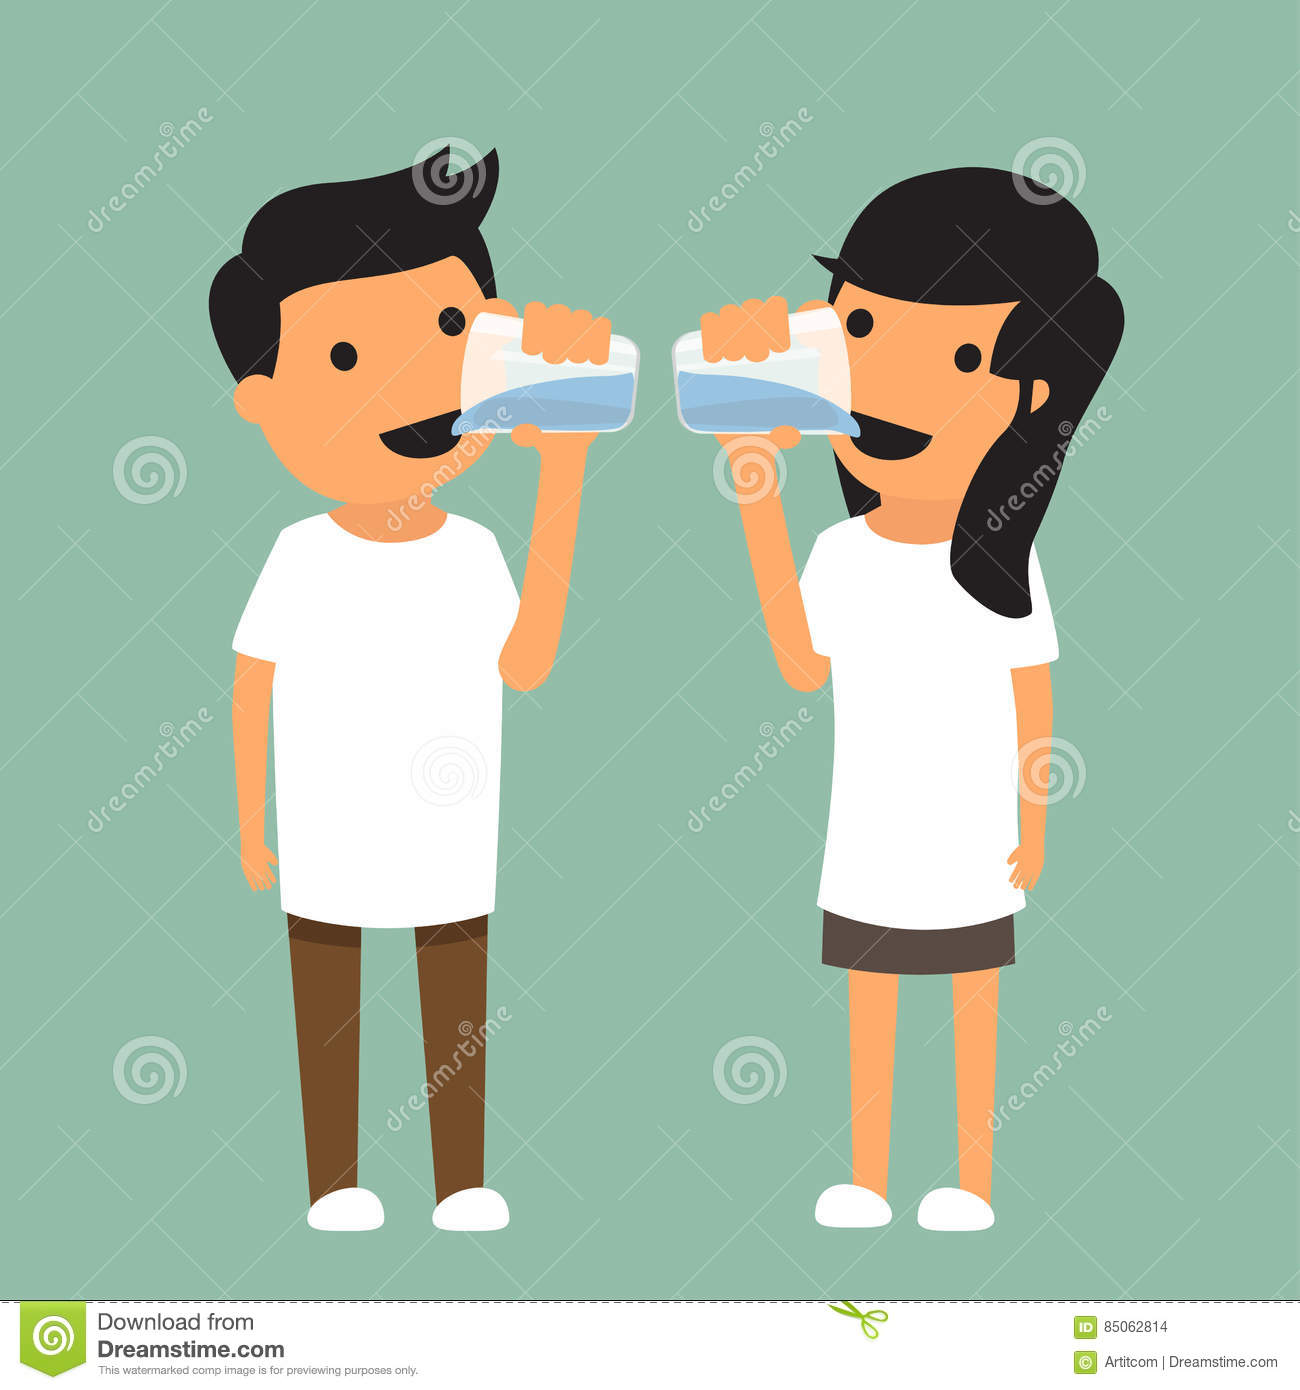 Man and woman drink enough water in health concept.